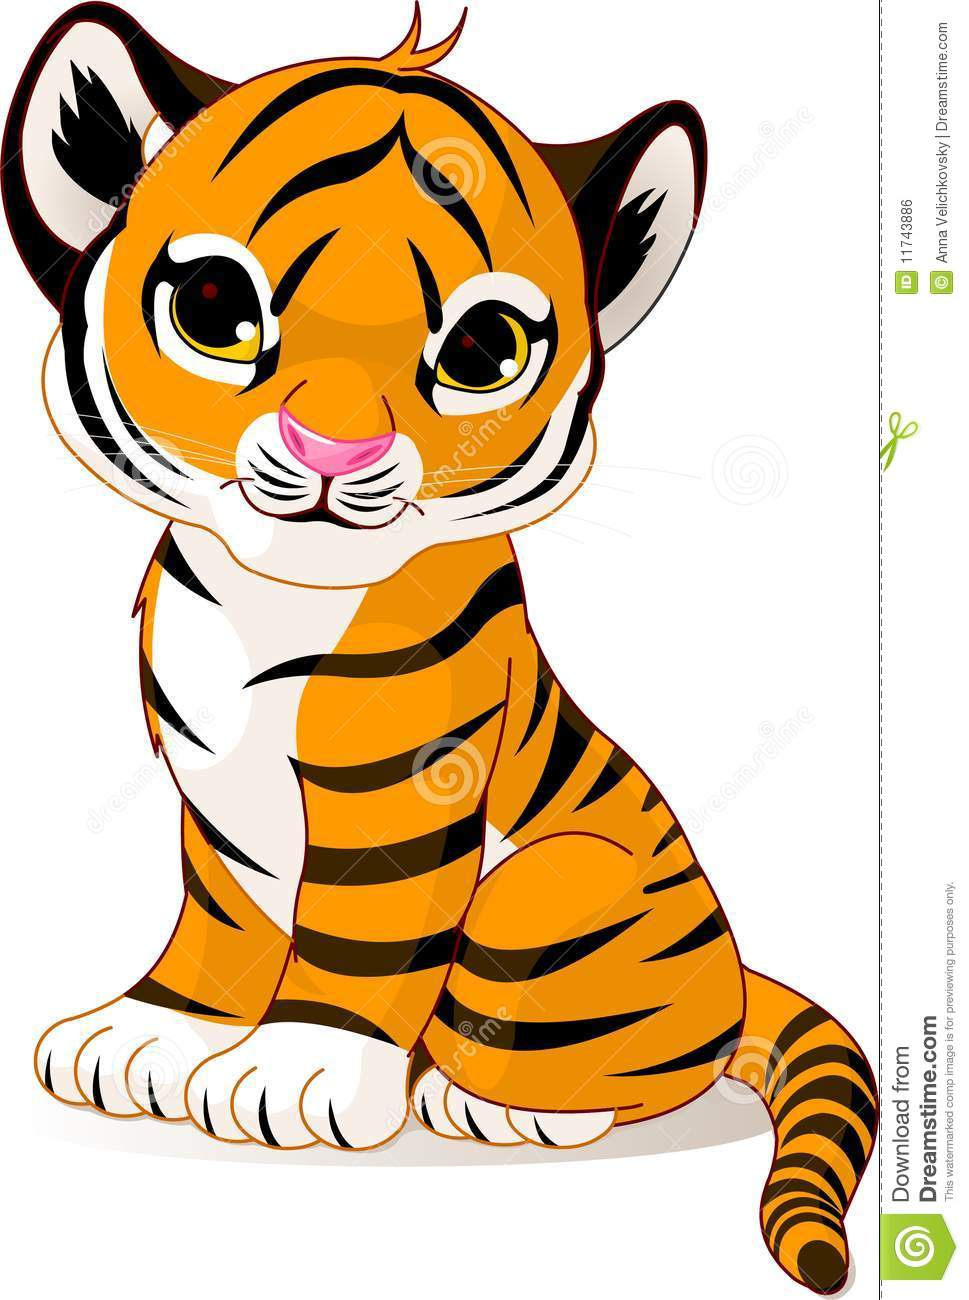 free tiger clipart at getdrawings com free for personal use free rh getdrawings com